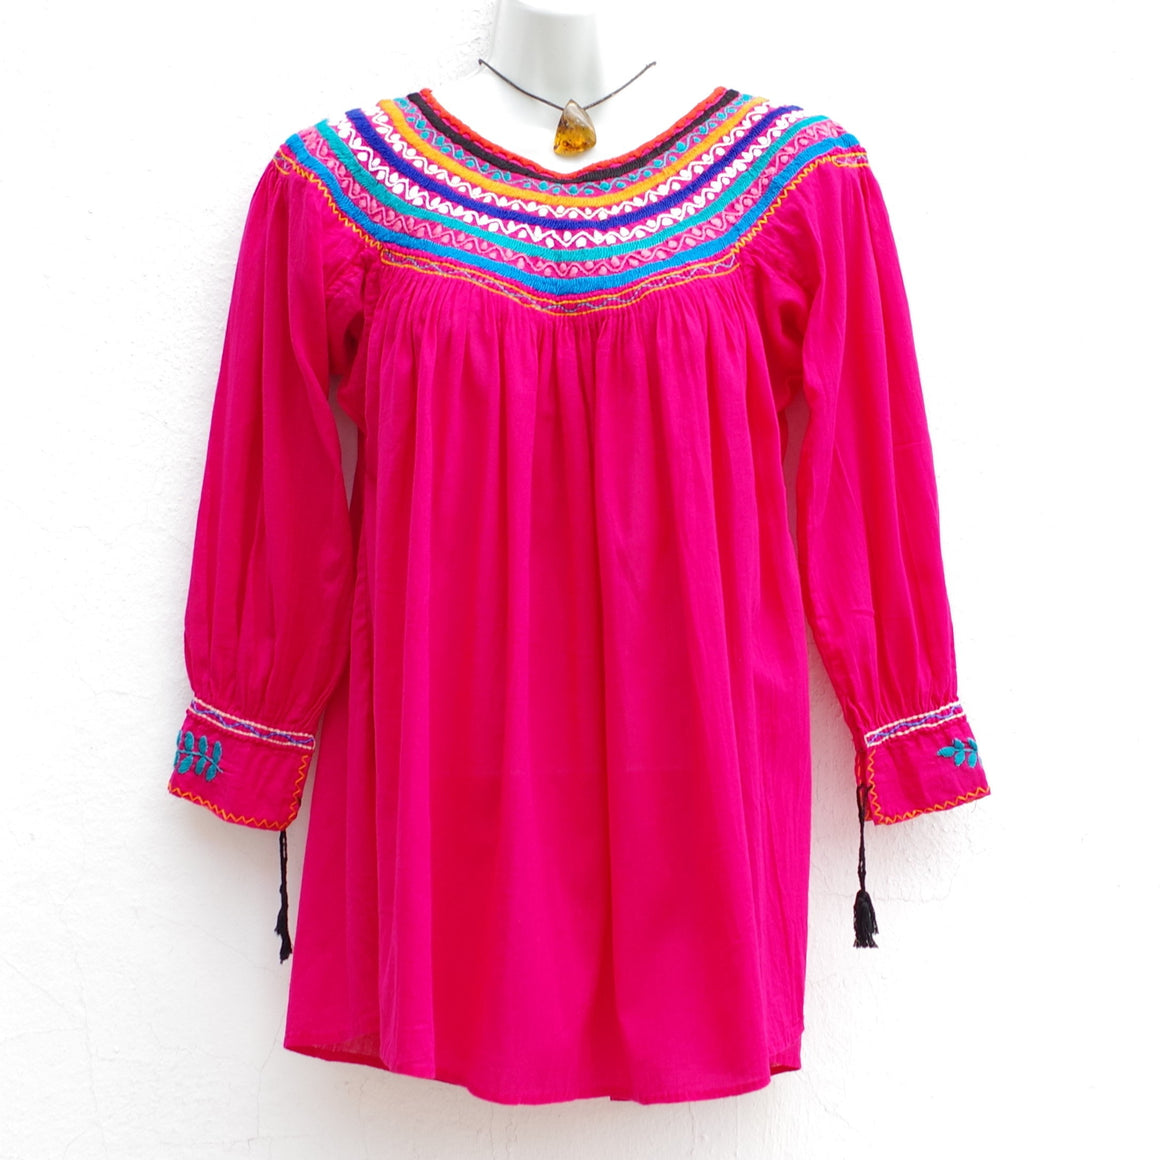 Mexican Women's Peasant Blouse Boho Hand Embroidery from Chiapas S